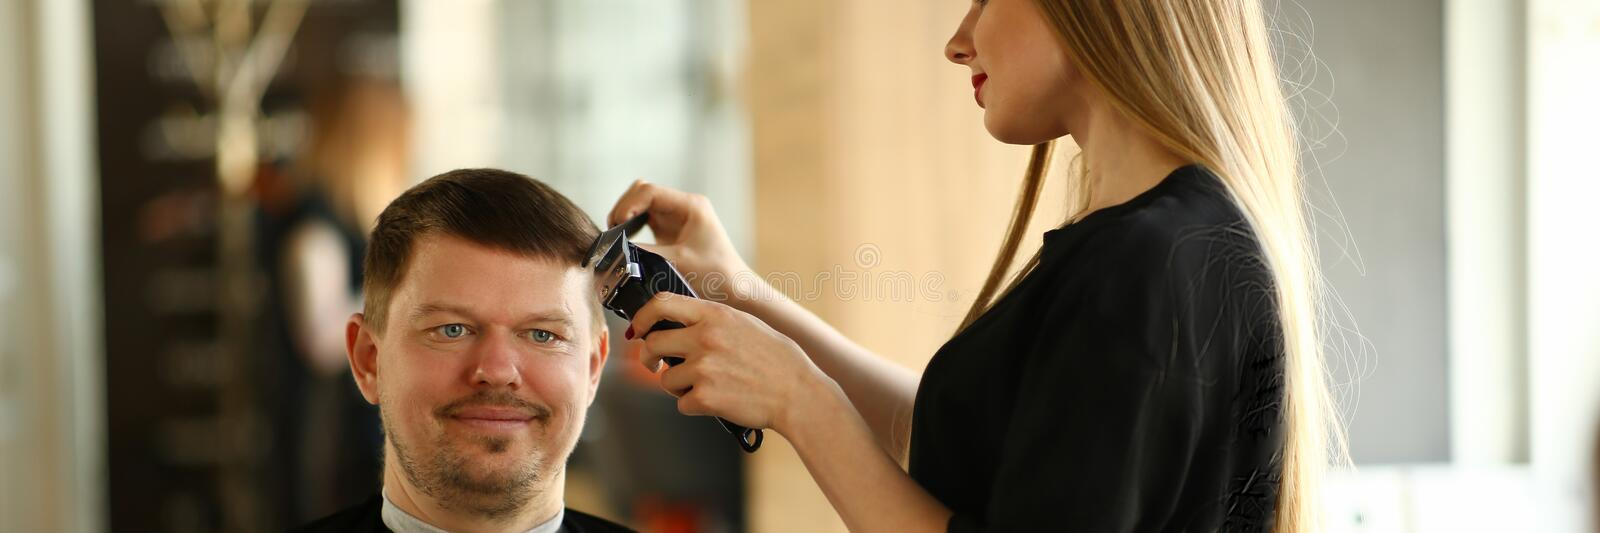 Woman Hairdresser Making Razor Haircut for Man. Female Hairstylist Styling Hairdo by Electric Shaver. Male Client Getting Hairstyle in Barbershop. Professional stock photography